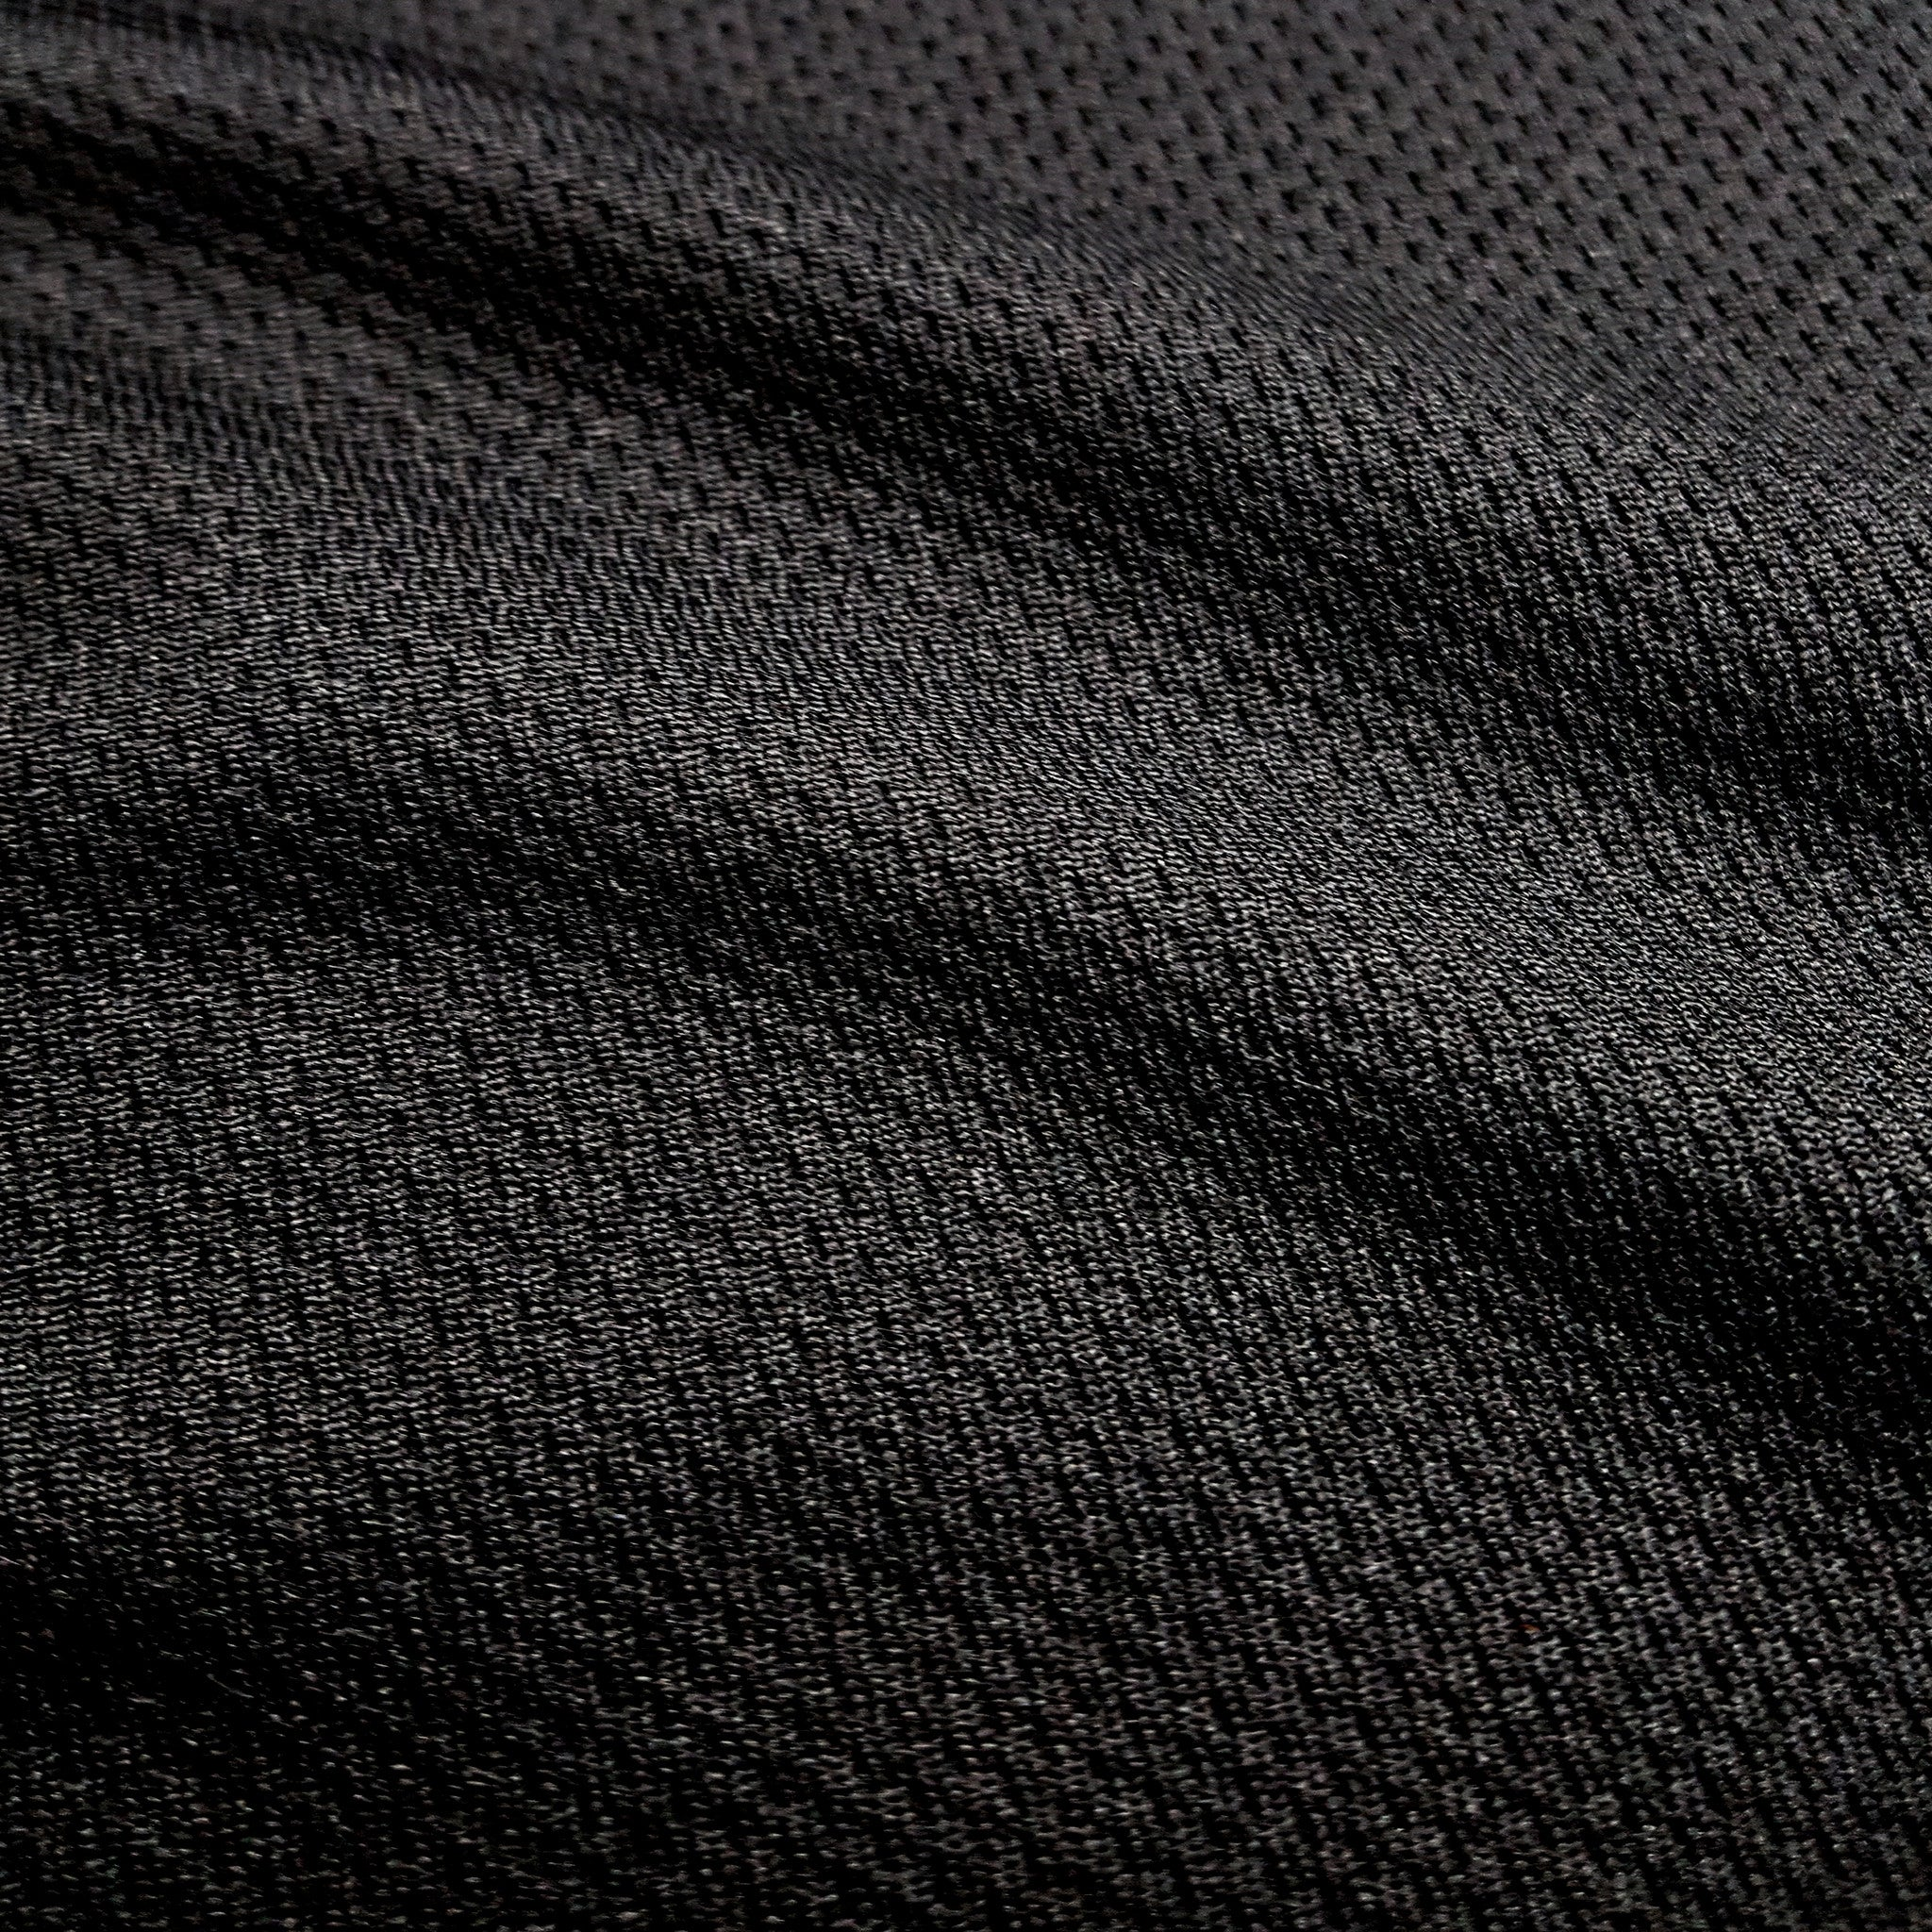 SportyFish Black Series black t-shirt: Giant Trevally close-up view 4